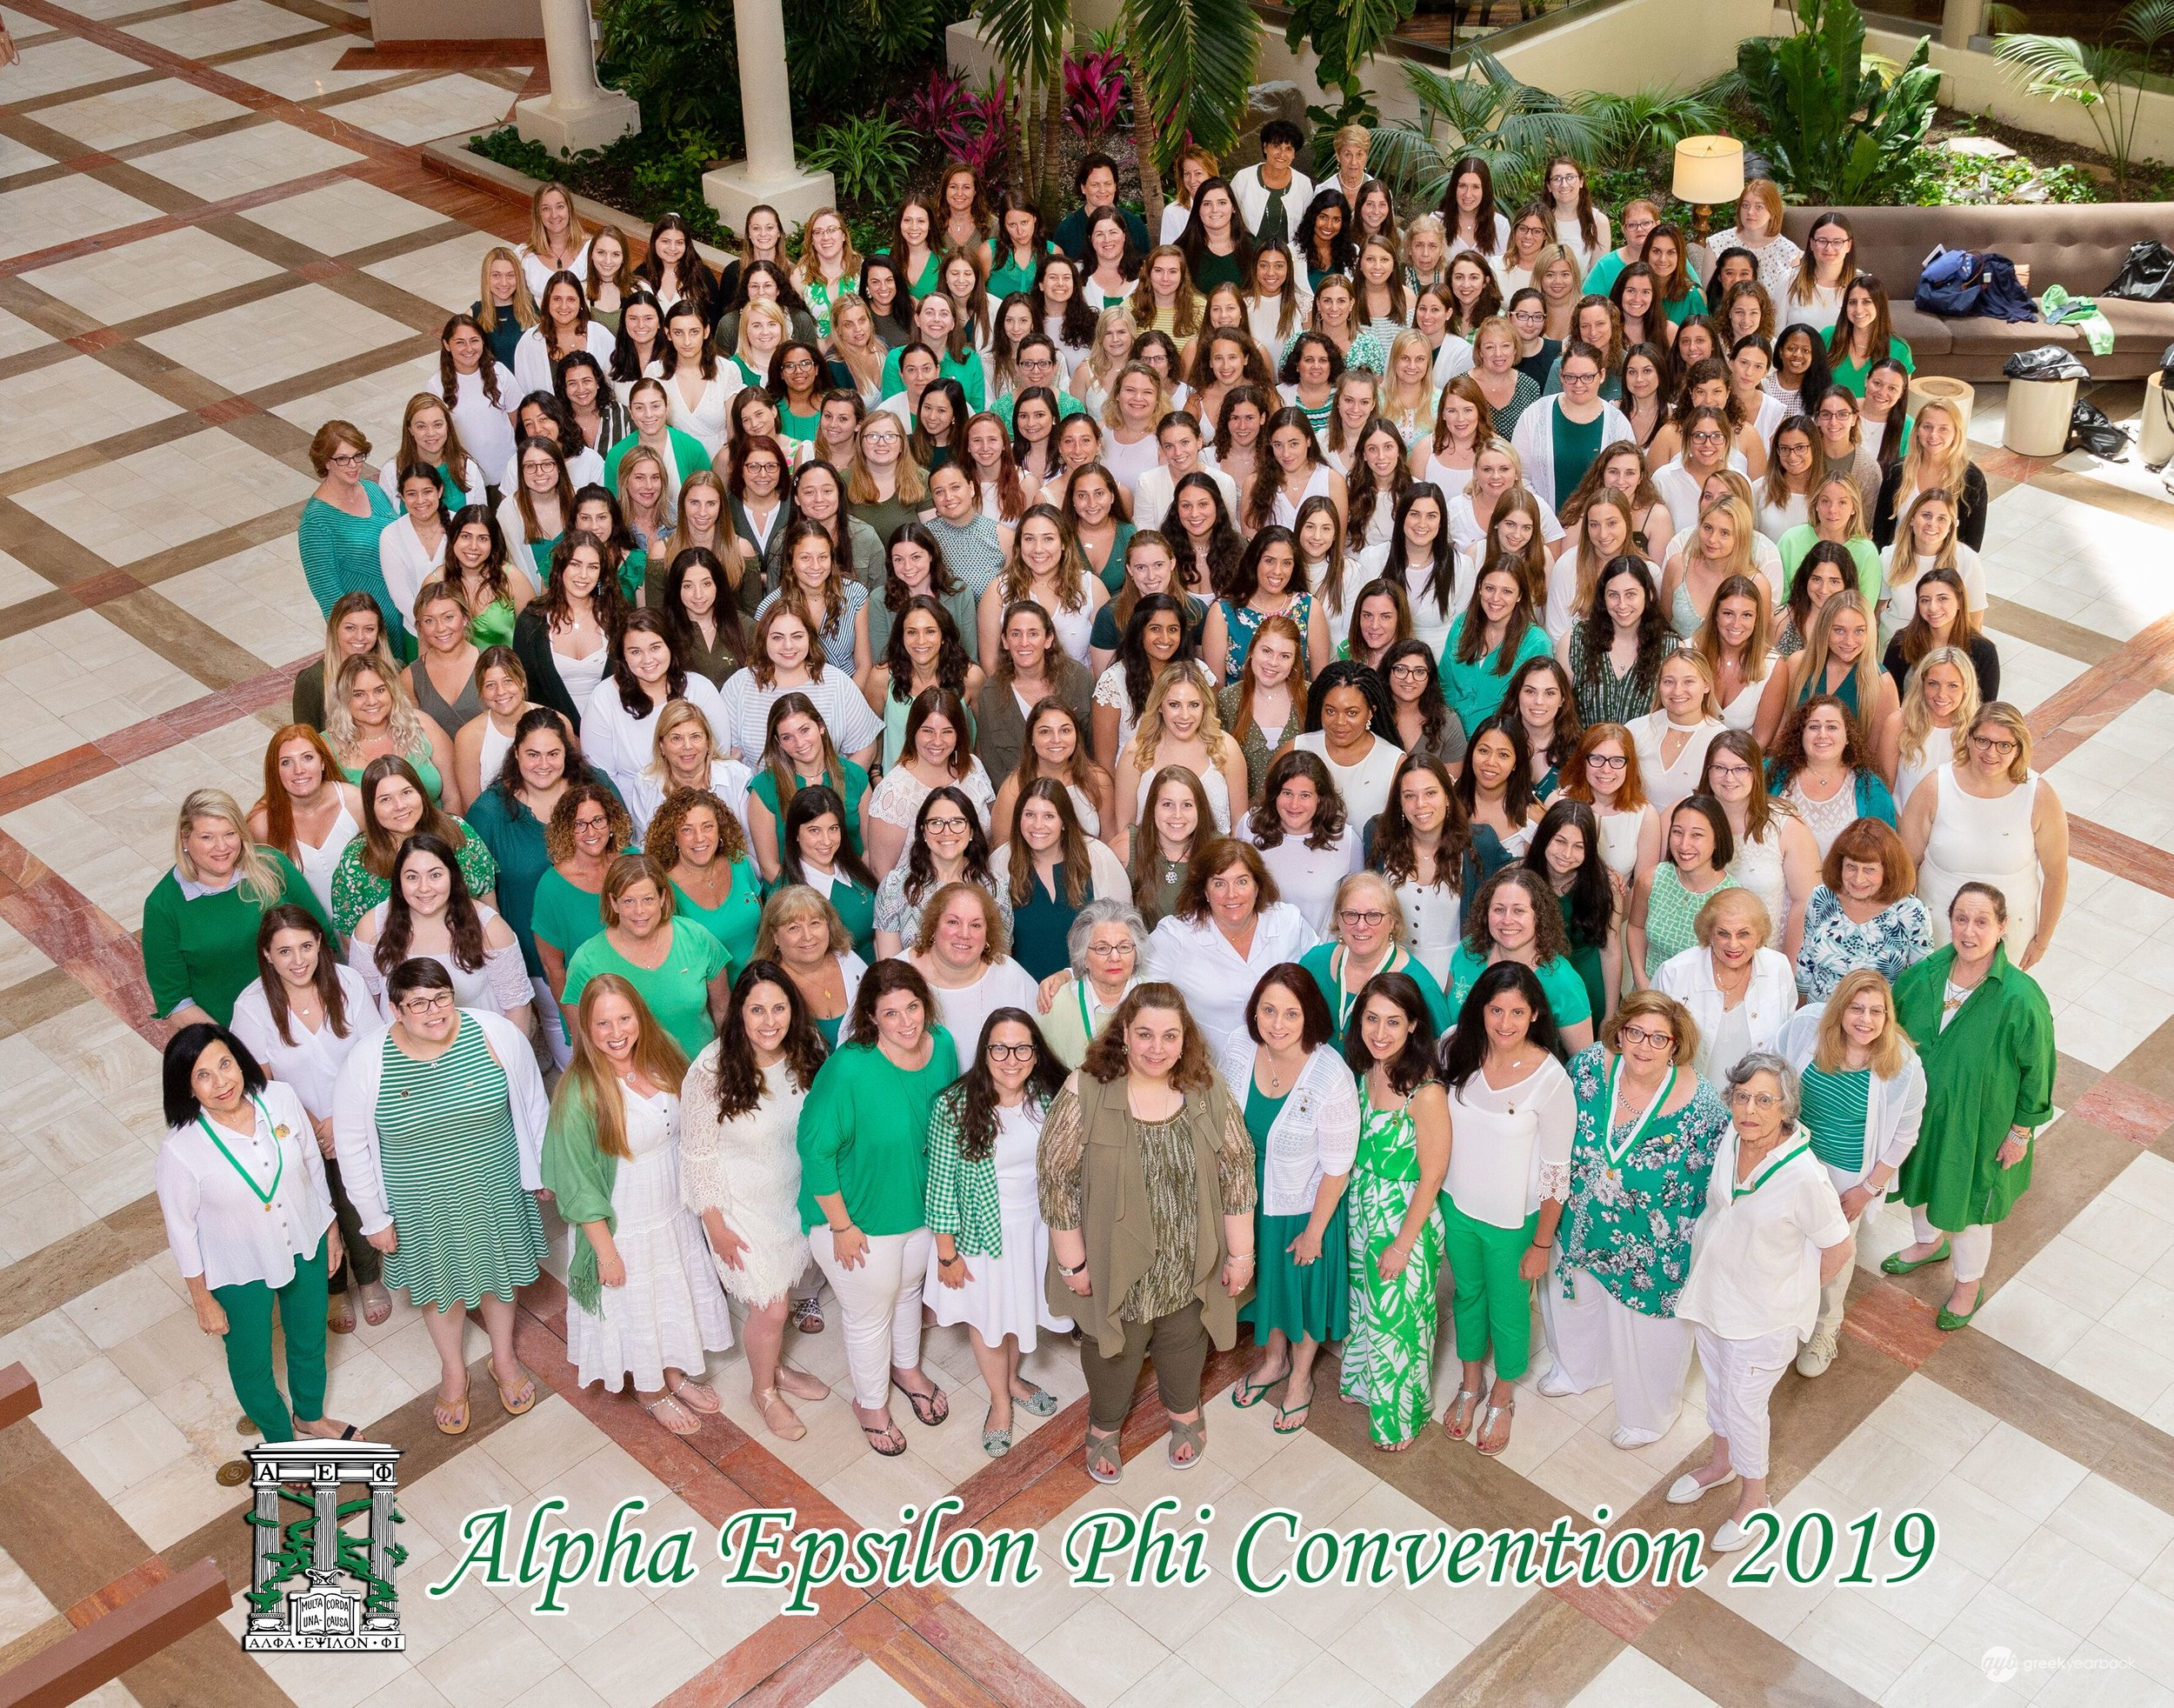 Convention 2019 Photos! - Thanks to GreekYearbook for being our official convention photography company. All photos from convention can be found online. GreekYearbook provides the best in sorority and fraternity composite, bid day, and convention photography for thousands of sorority and fraternity members across the United States and Canada.